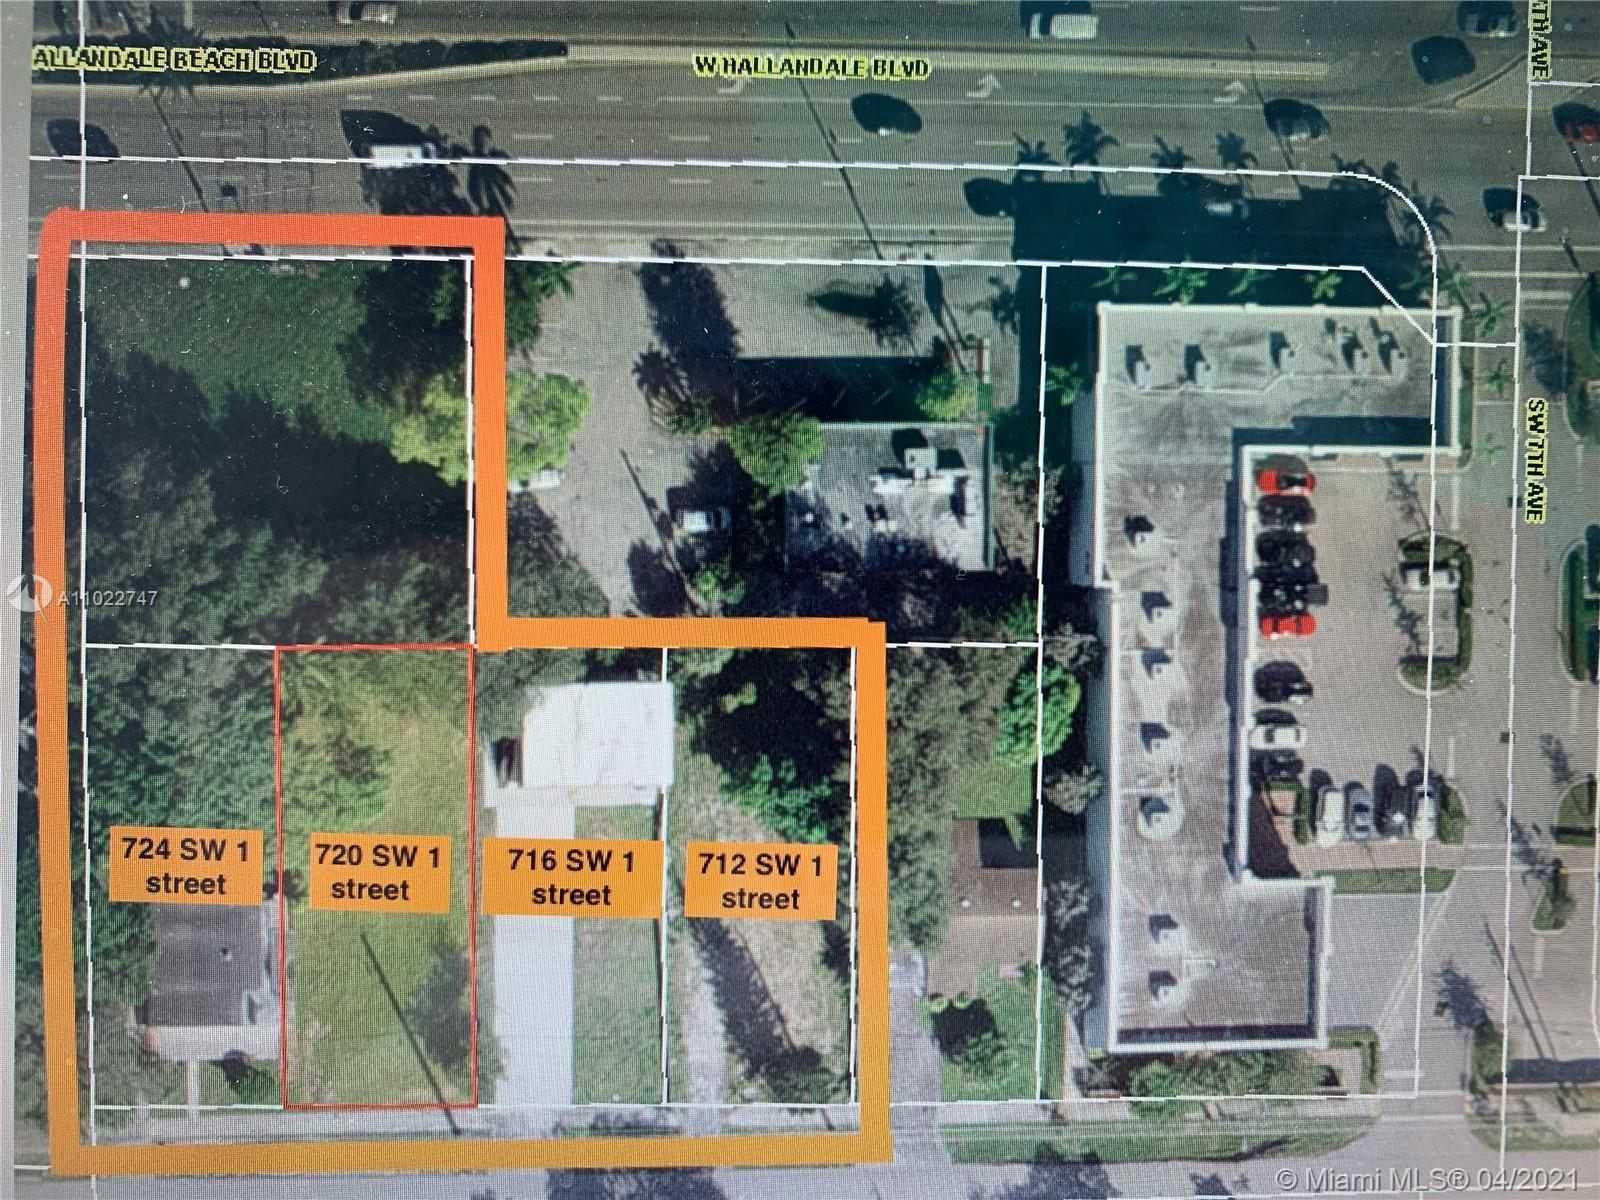 Commercial lot only, must be sold with 716 sw 1 street or 0.78 acres lot, 2 miles to the beach or Av